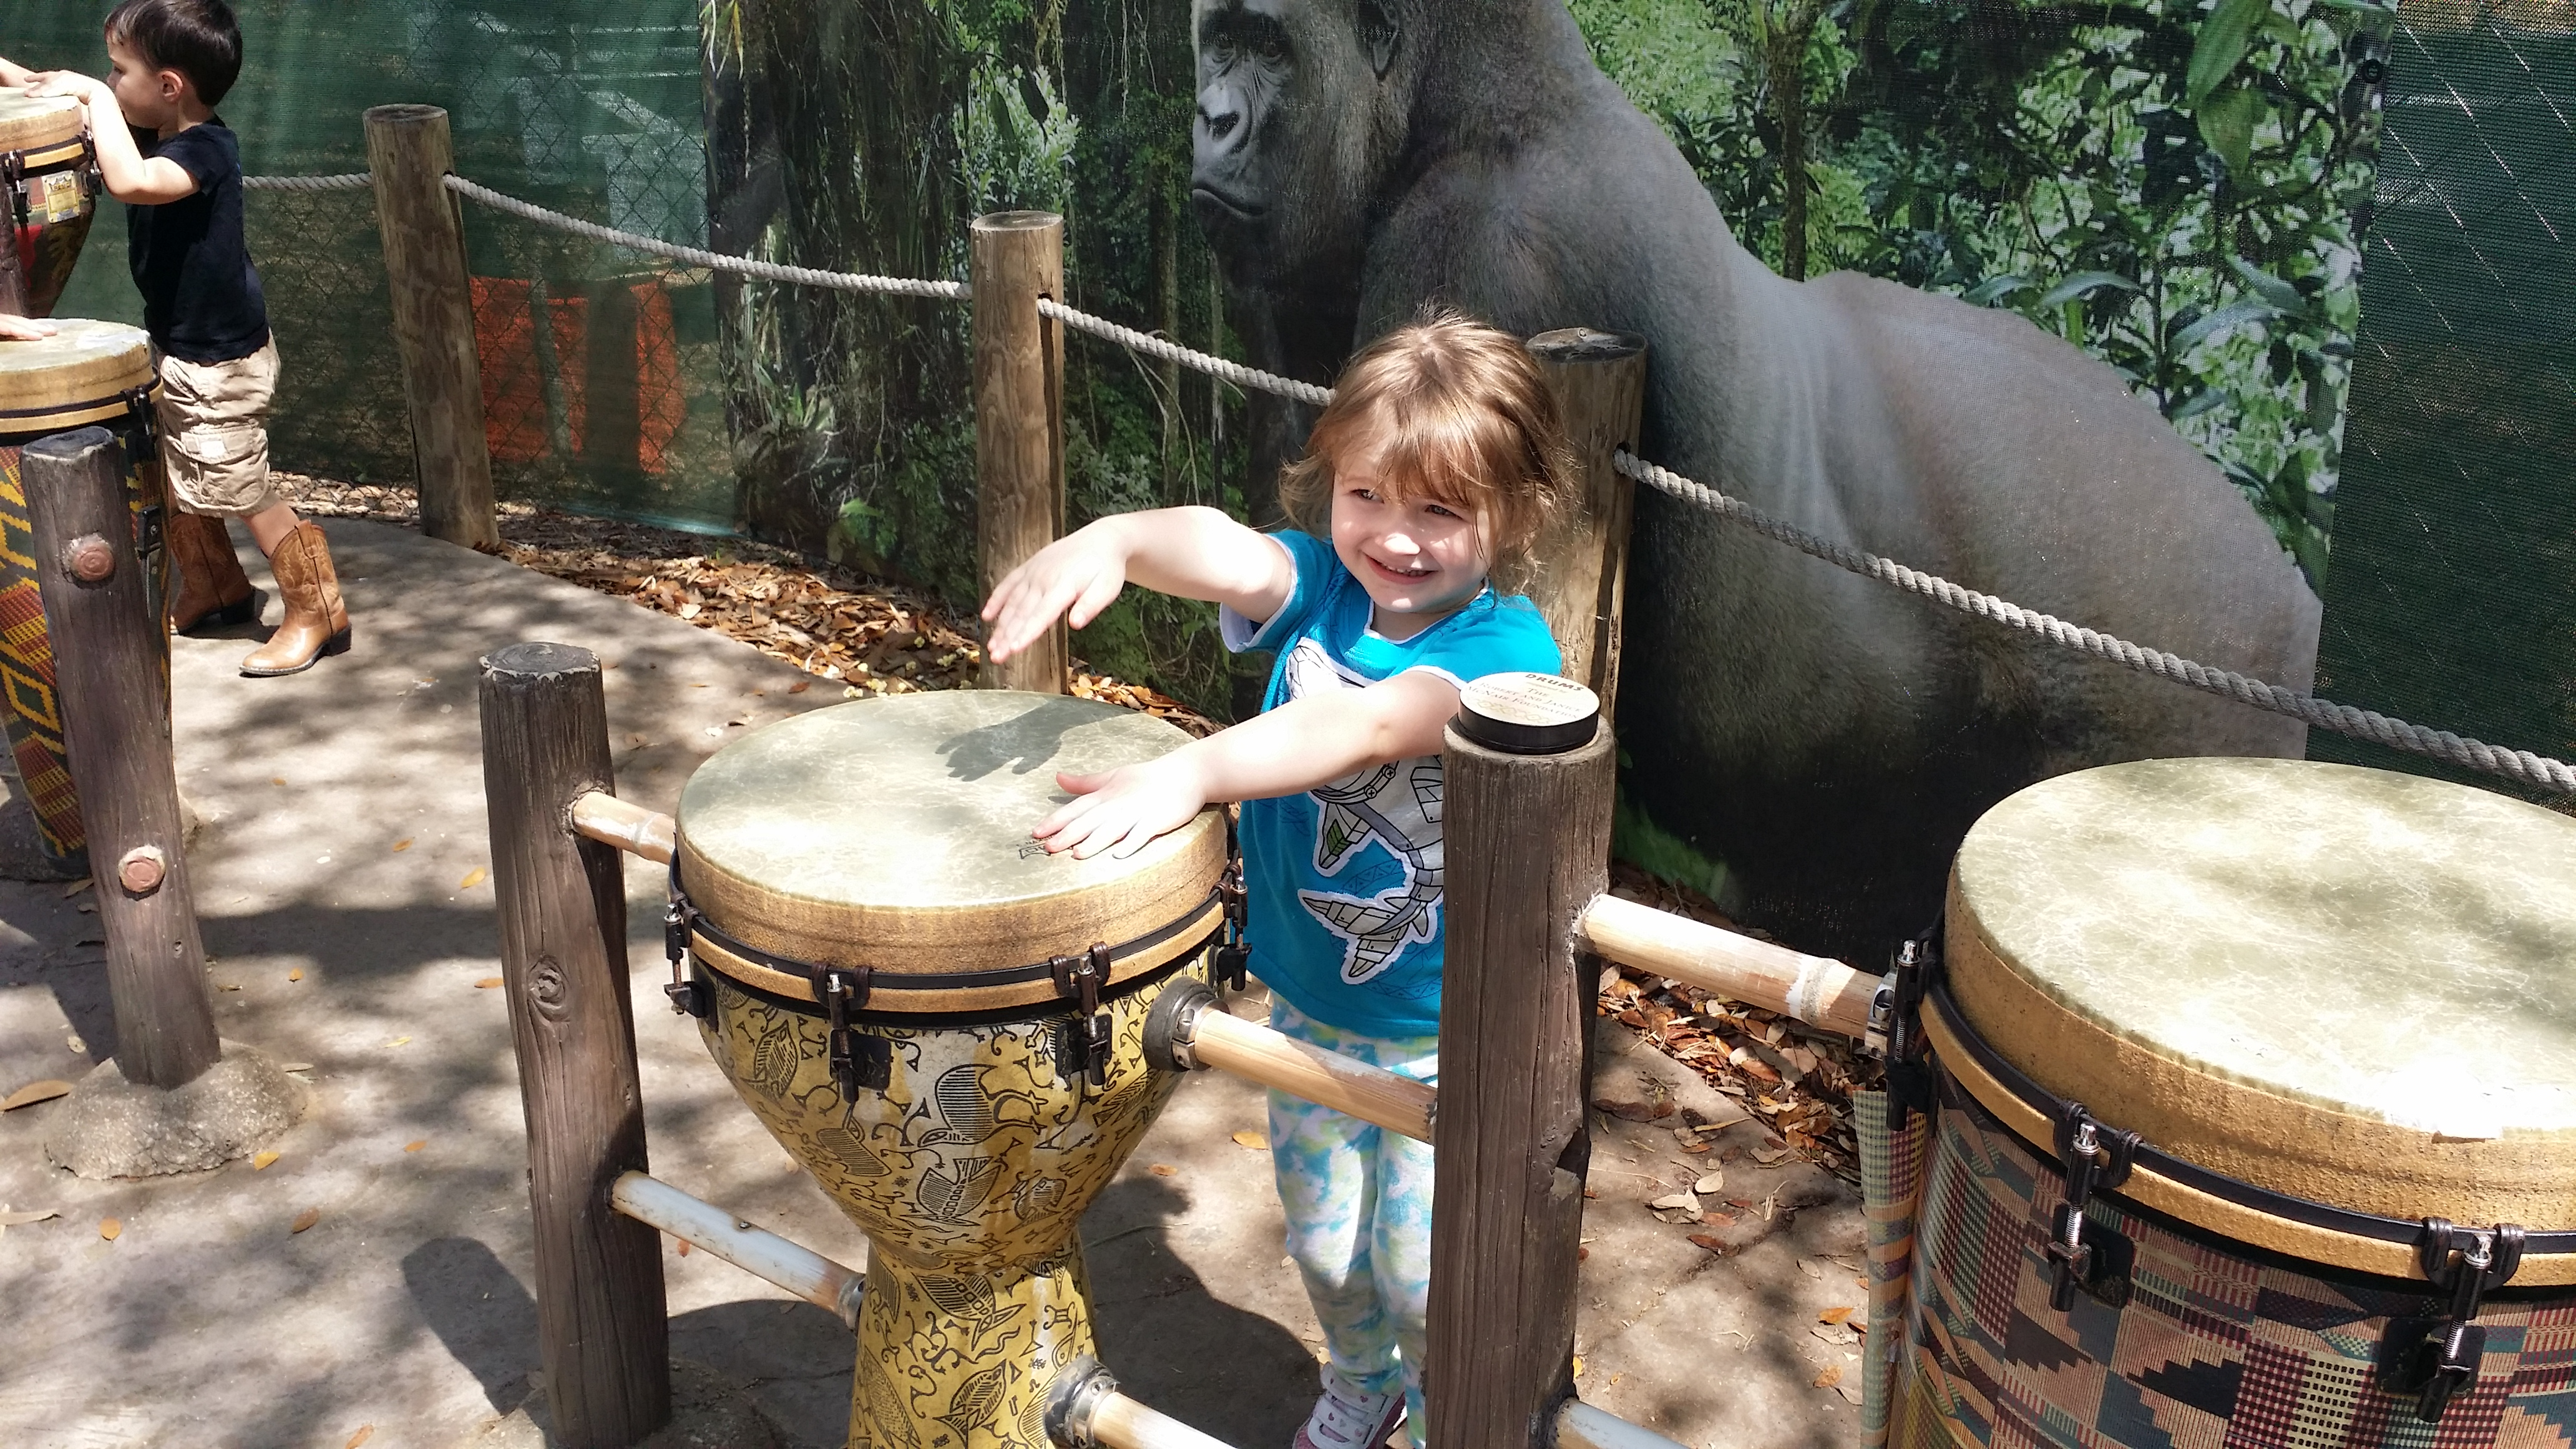 fast times at the houston zoo grouchymuffin. Black Bedroom Furniture Sets. Home Design Ideas